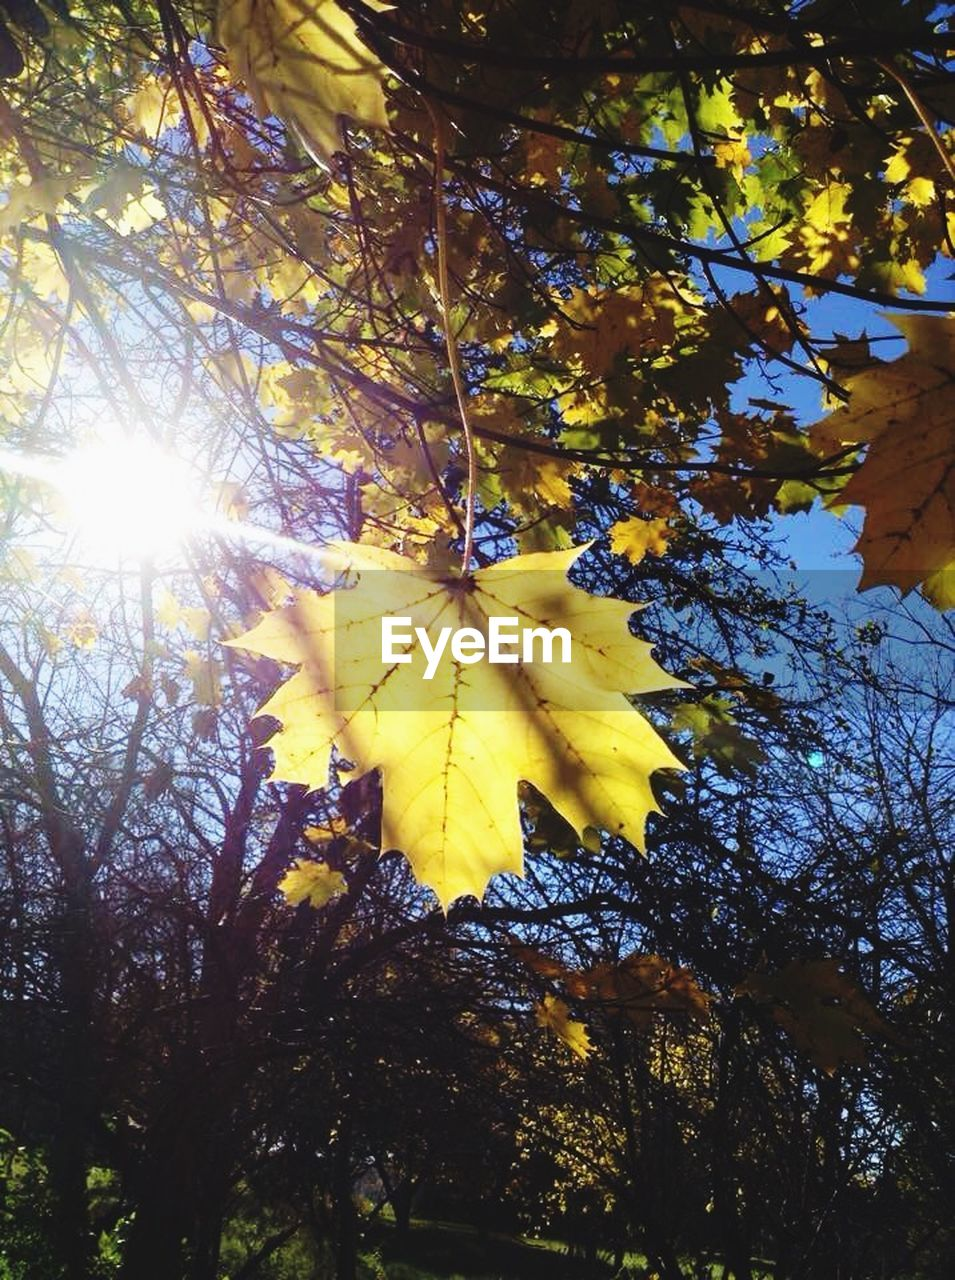 autumn, leaf, change, tree, low angle view, nature, maple leaf, branch, beauty in nature, day, maple, maple tree, outdoors, yellow, sunlight, no people, growth, close-up, fragility, sky